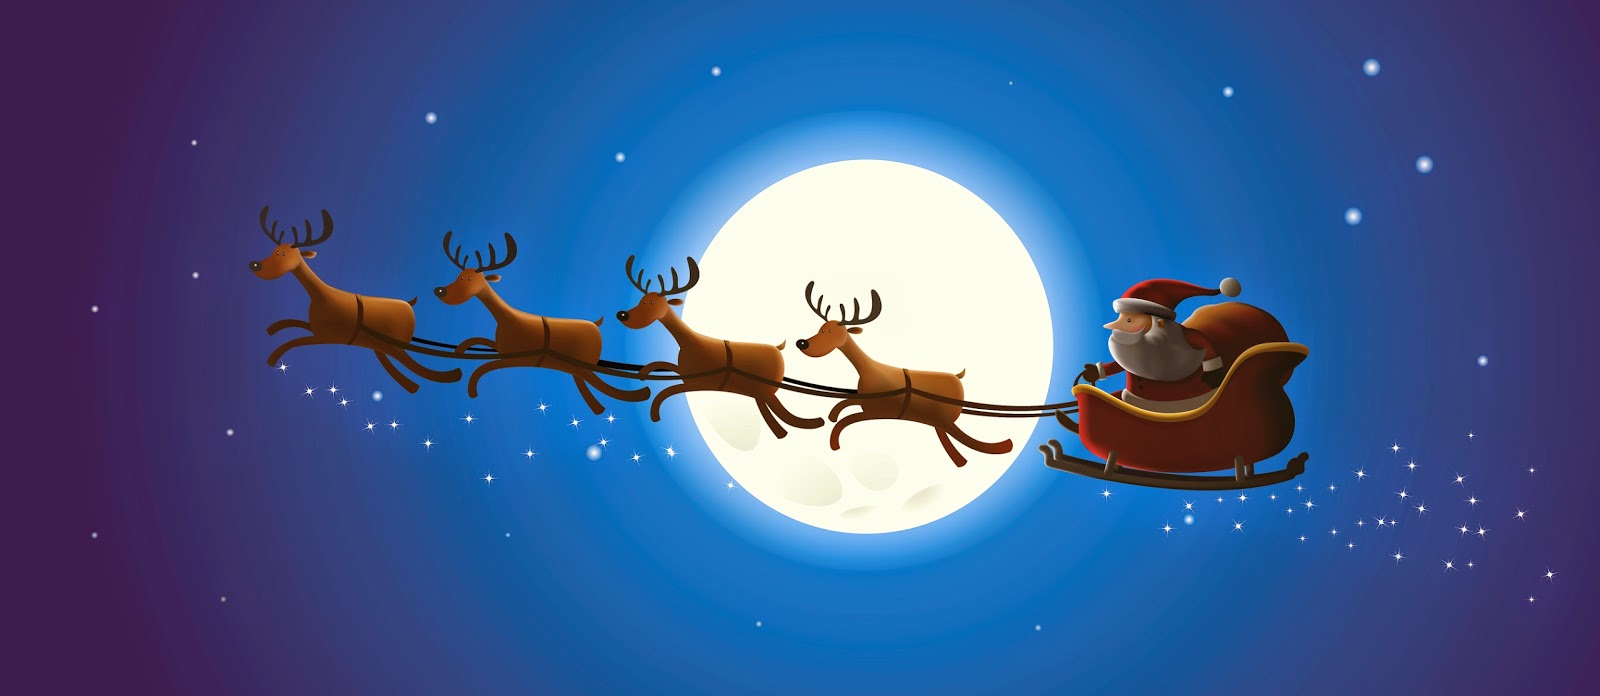 1600x696 Santa Claus Coming To Town Riding His Reindeer Sleigh Flying